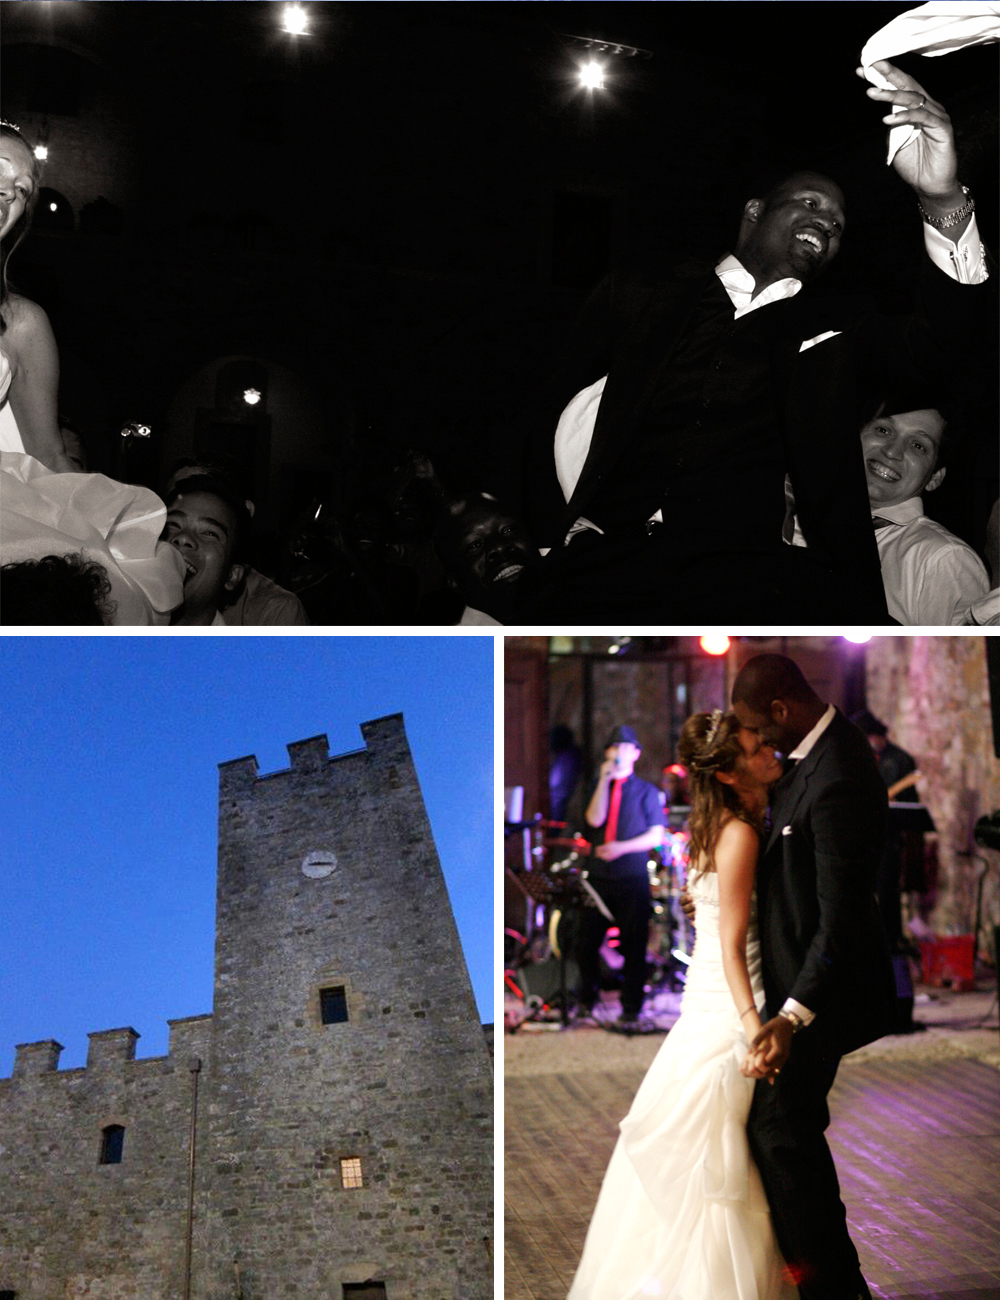 TUSCANY CASTLE WEDDING ITALY 8